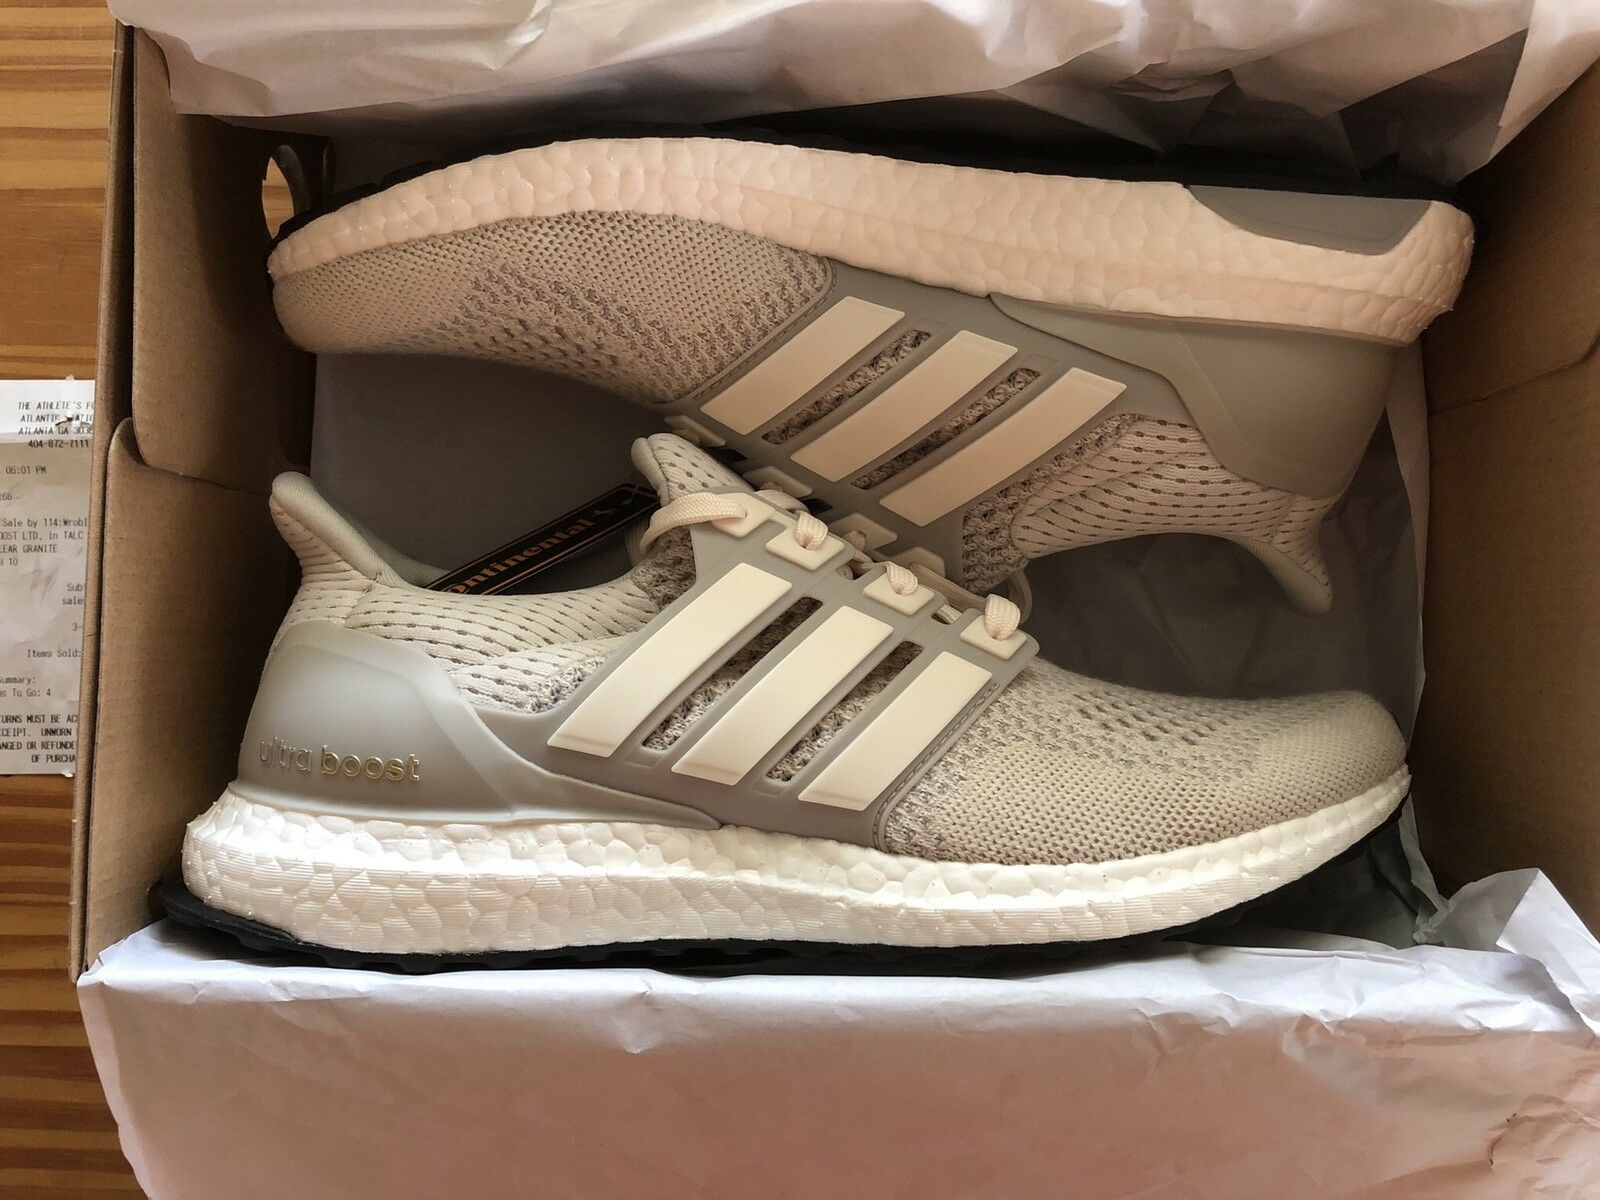 reputable site c2e4d 31225 Adidas Ultra Boost 1.0 LTD LTD LTD Cream Chalk AQ5559 PK UltraBoost Size 10  Deadstock 7161f2